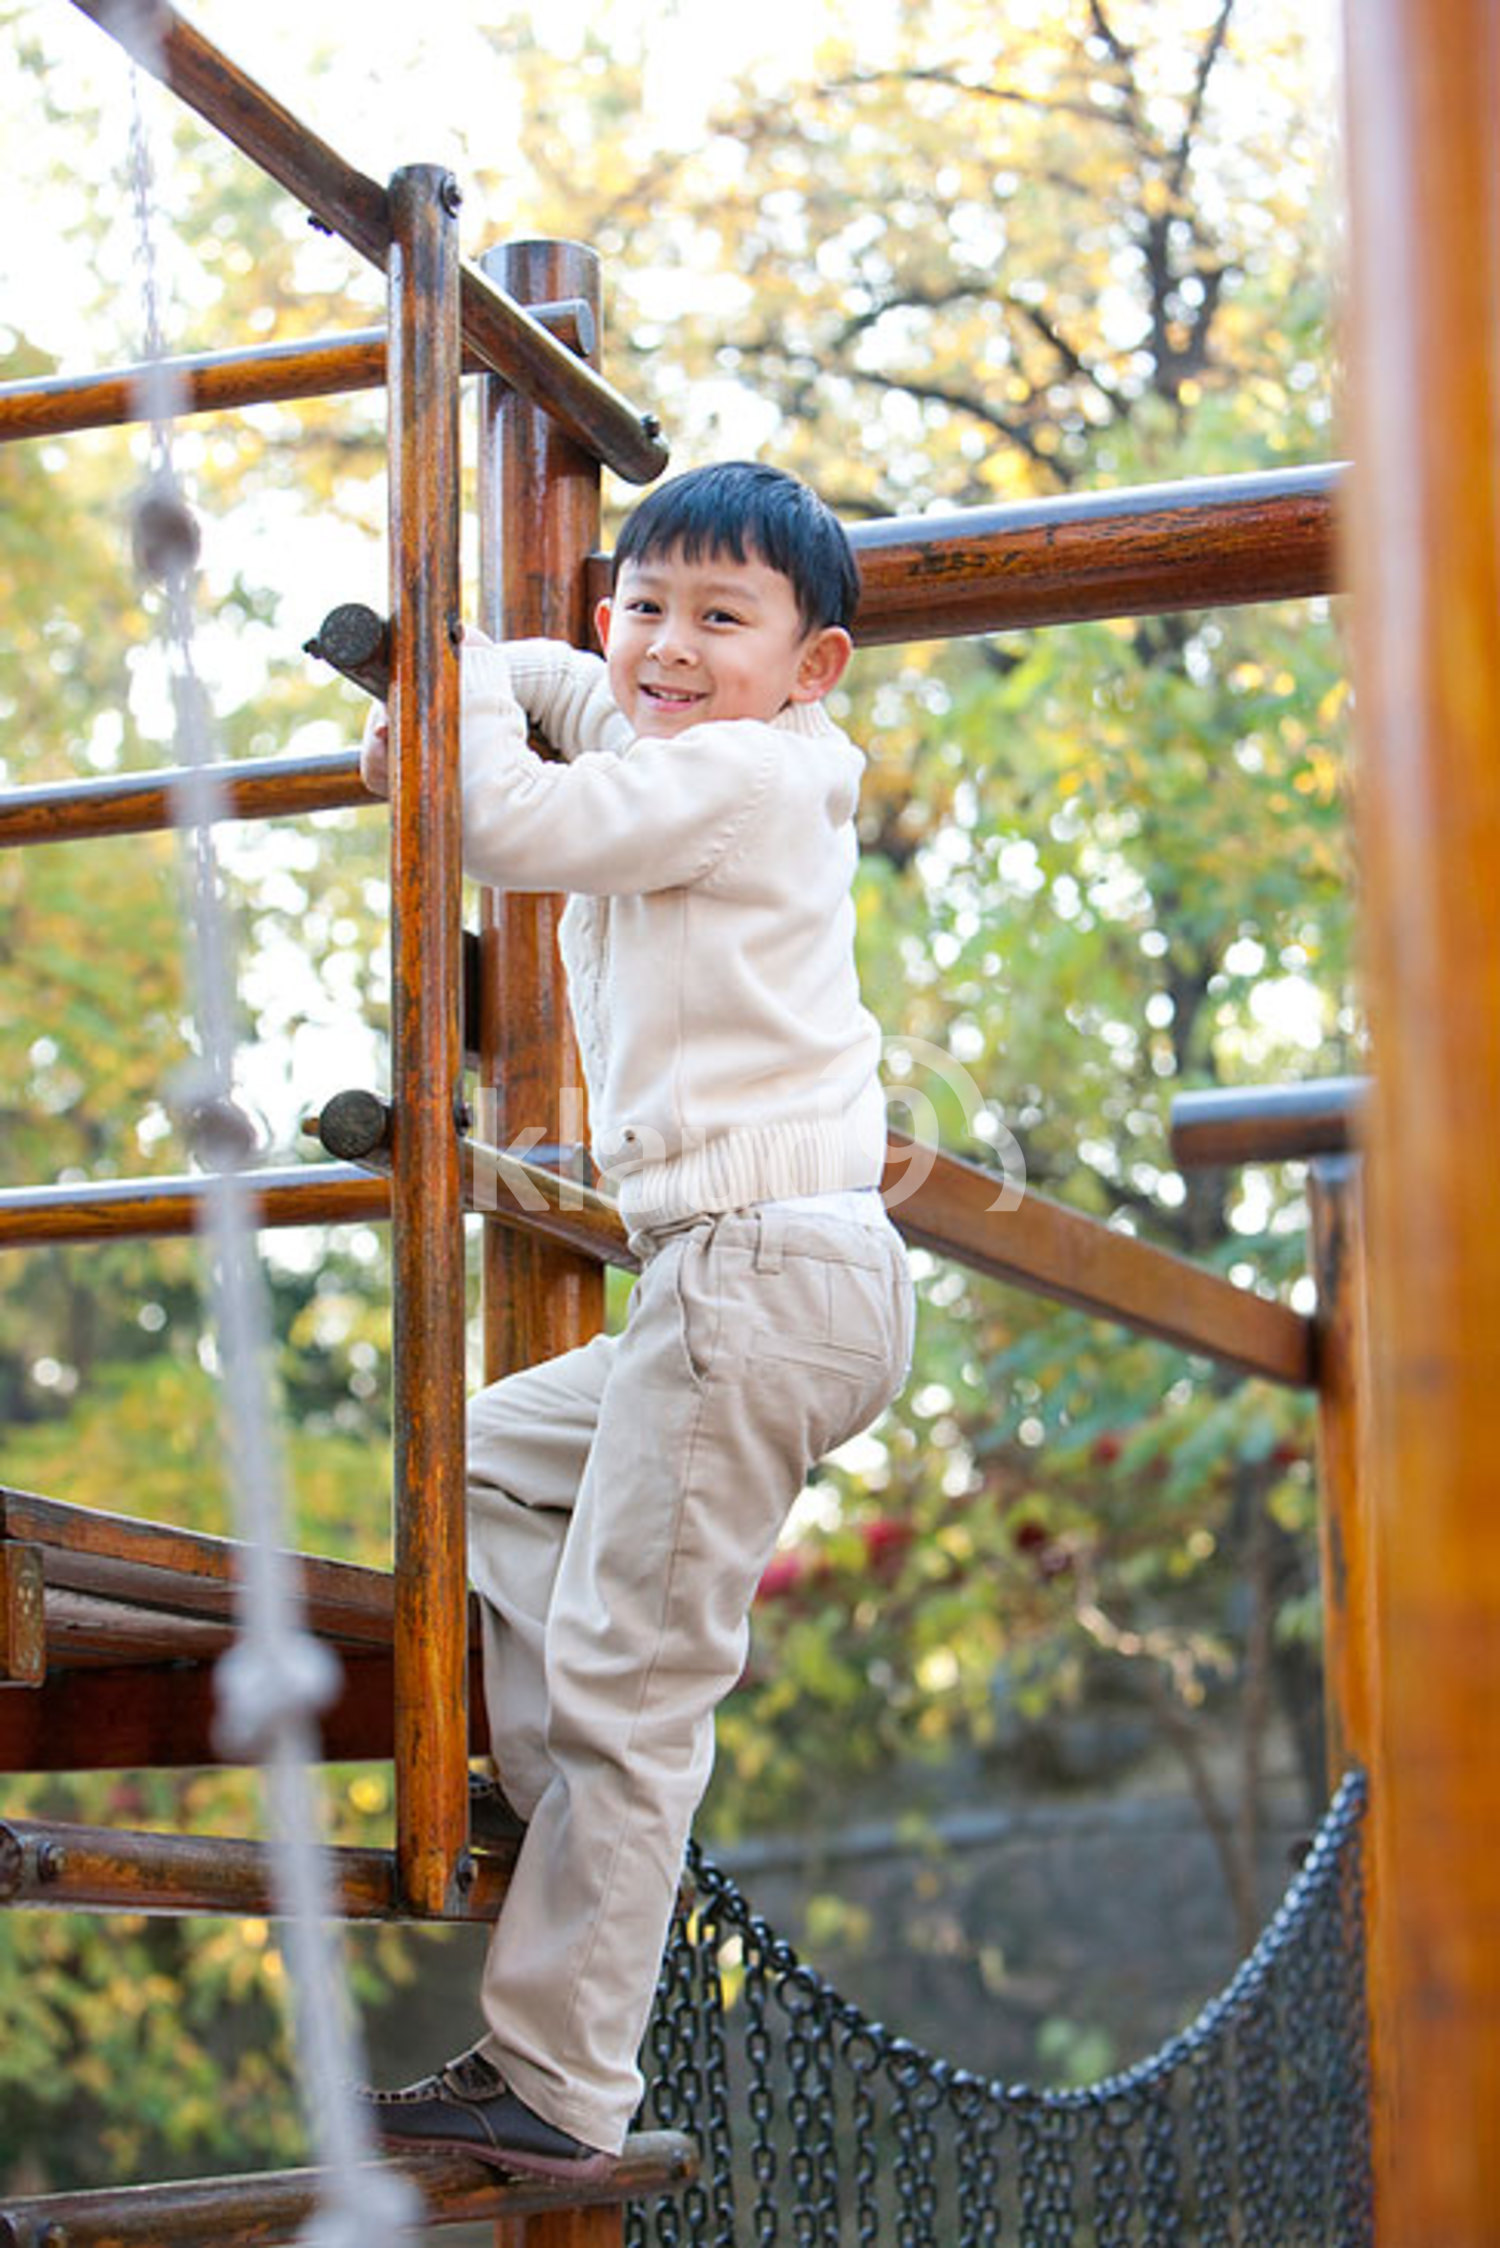 Chinese boy climbing a ladder in a playground